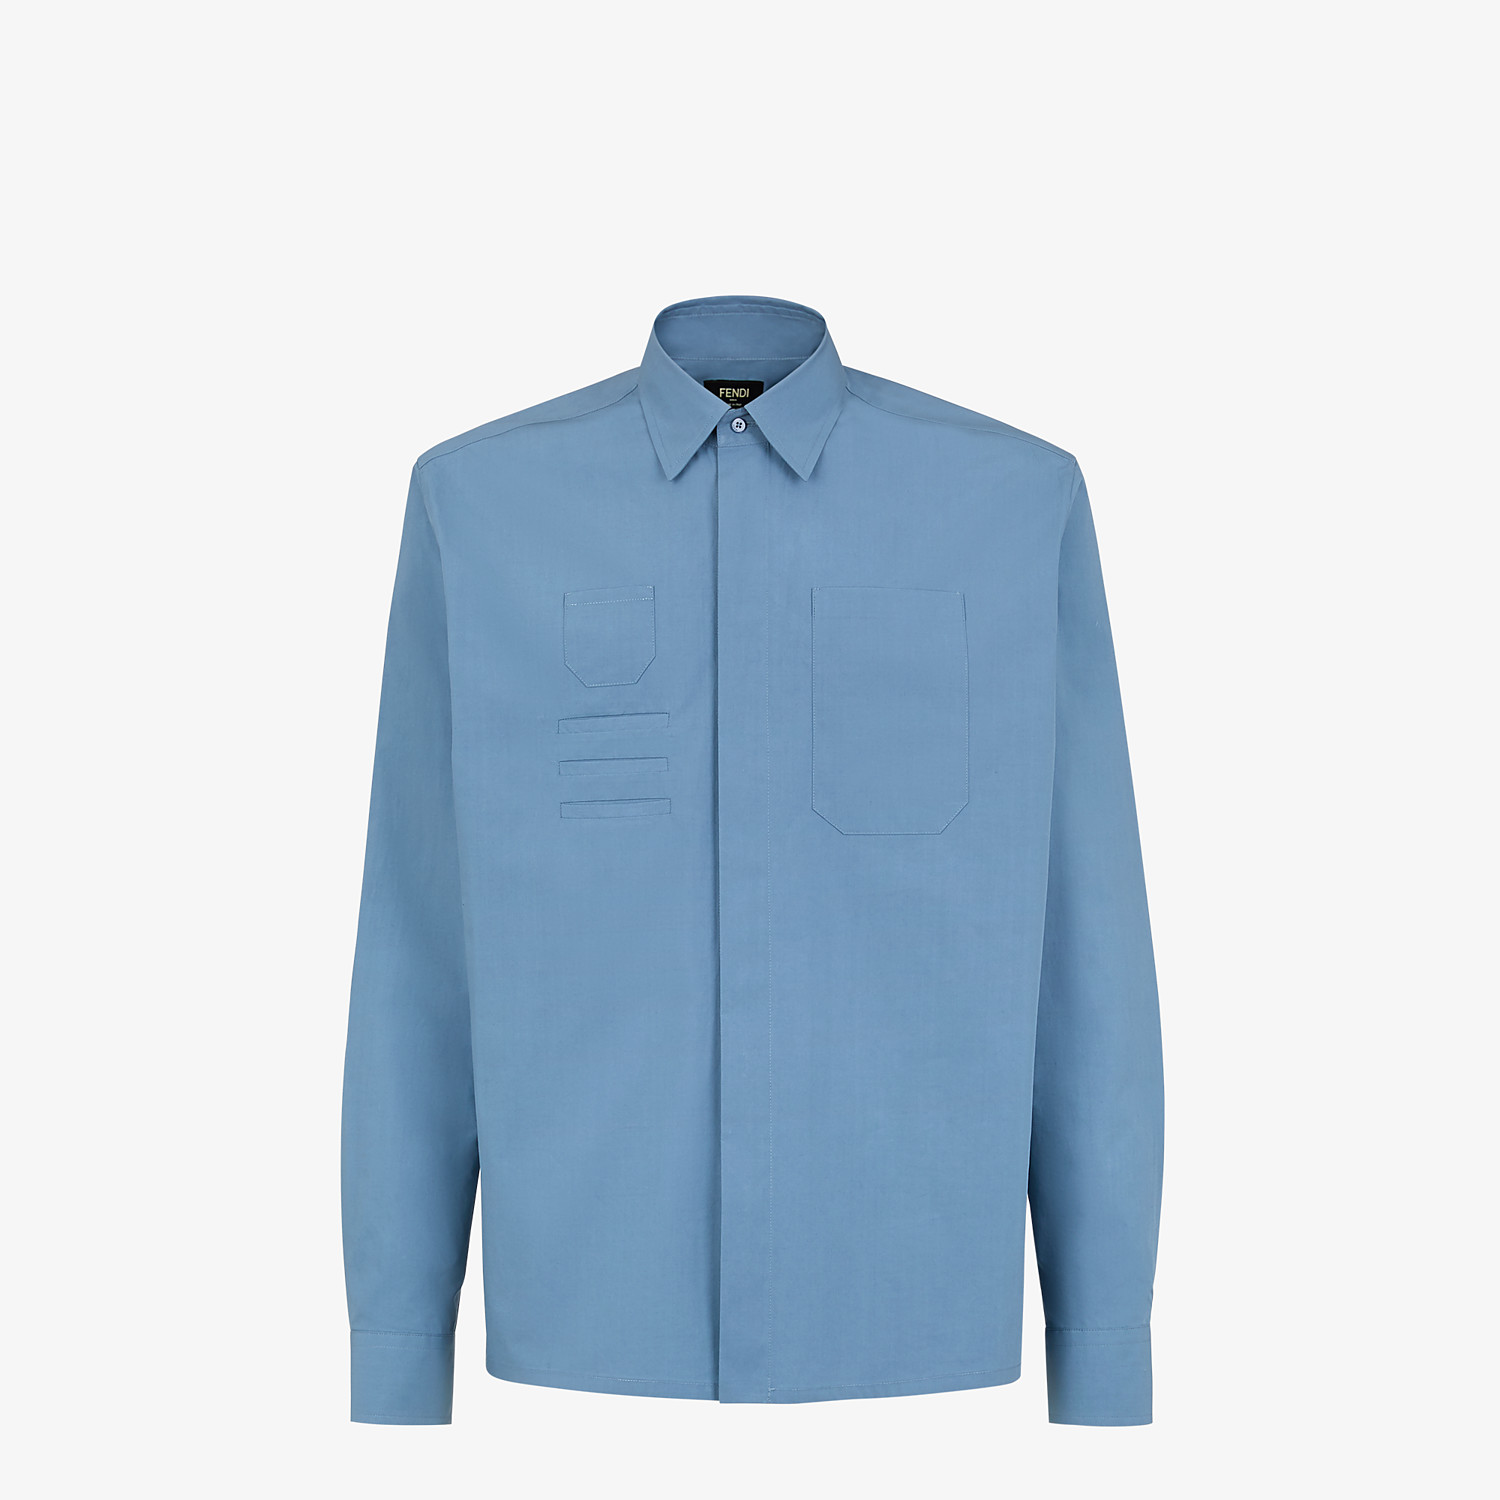 FENDI SHIRT - Light blue cotton shirt - view 1 detail